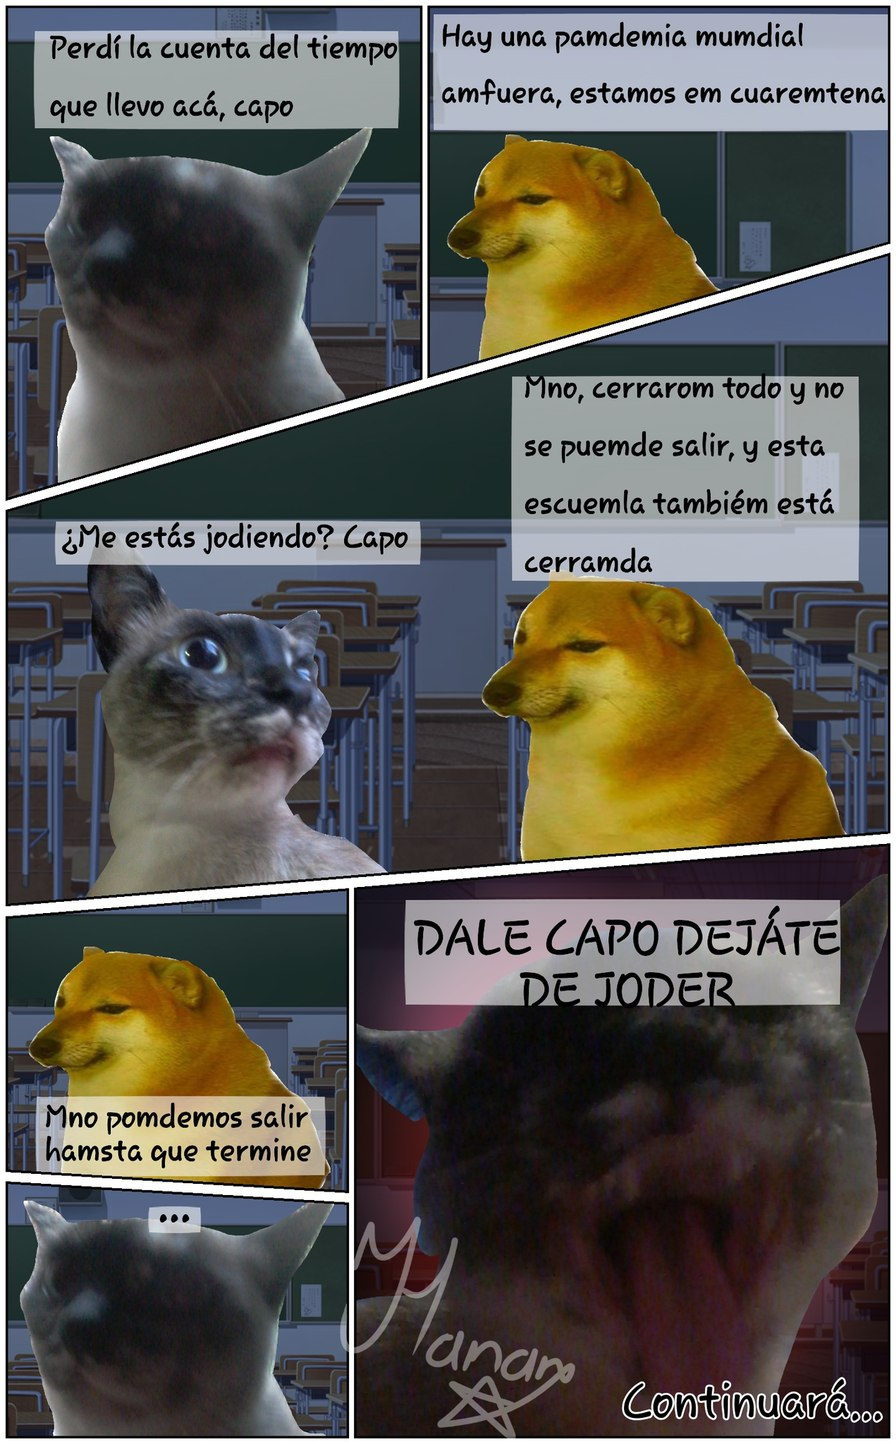 Pamdemia global, capo. - meme